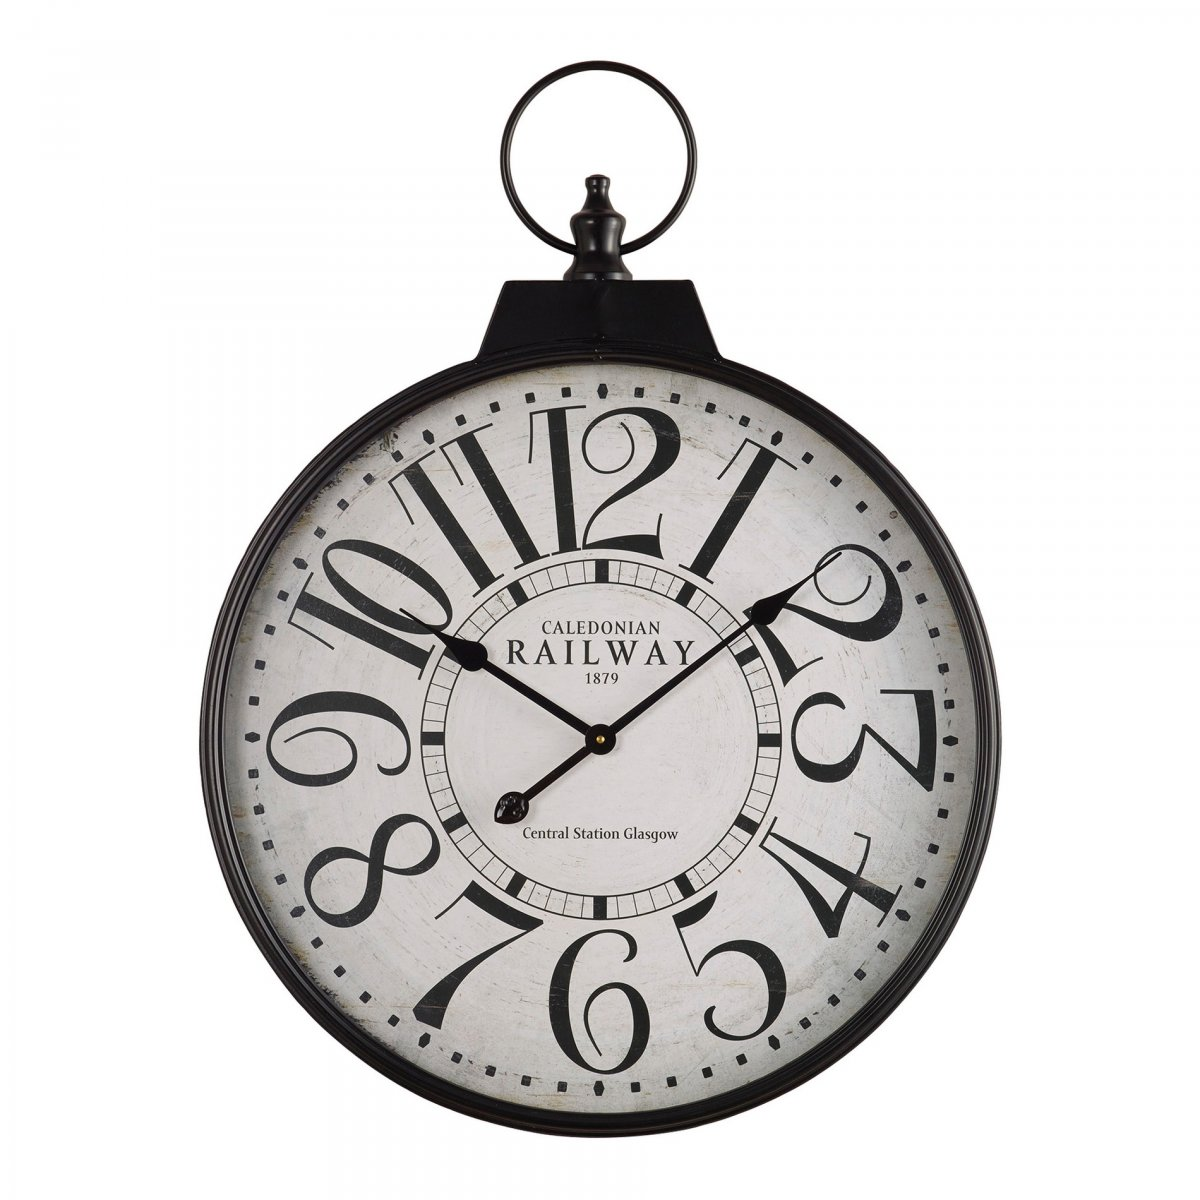 Railway wall clock accessories oak furniture land product information amipublicfo Gallery